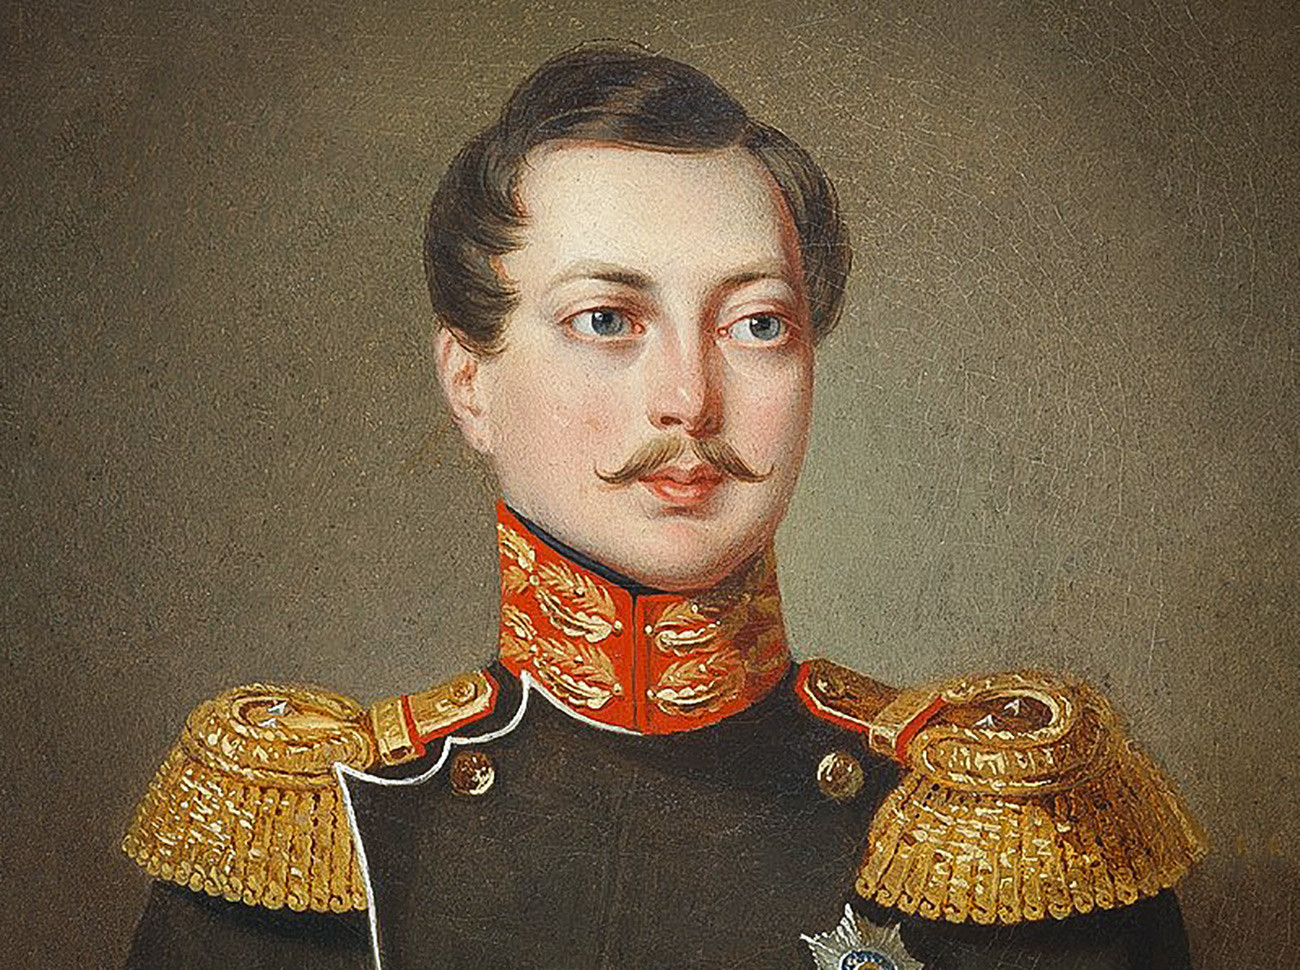 Young Alexander II, back then - tsarevich and heir to the Russian throne.